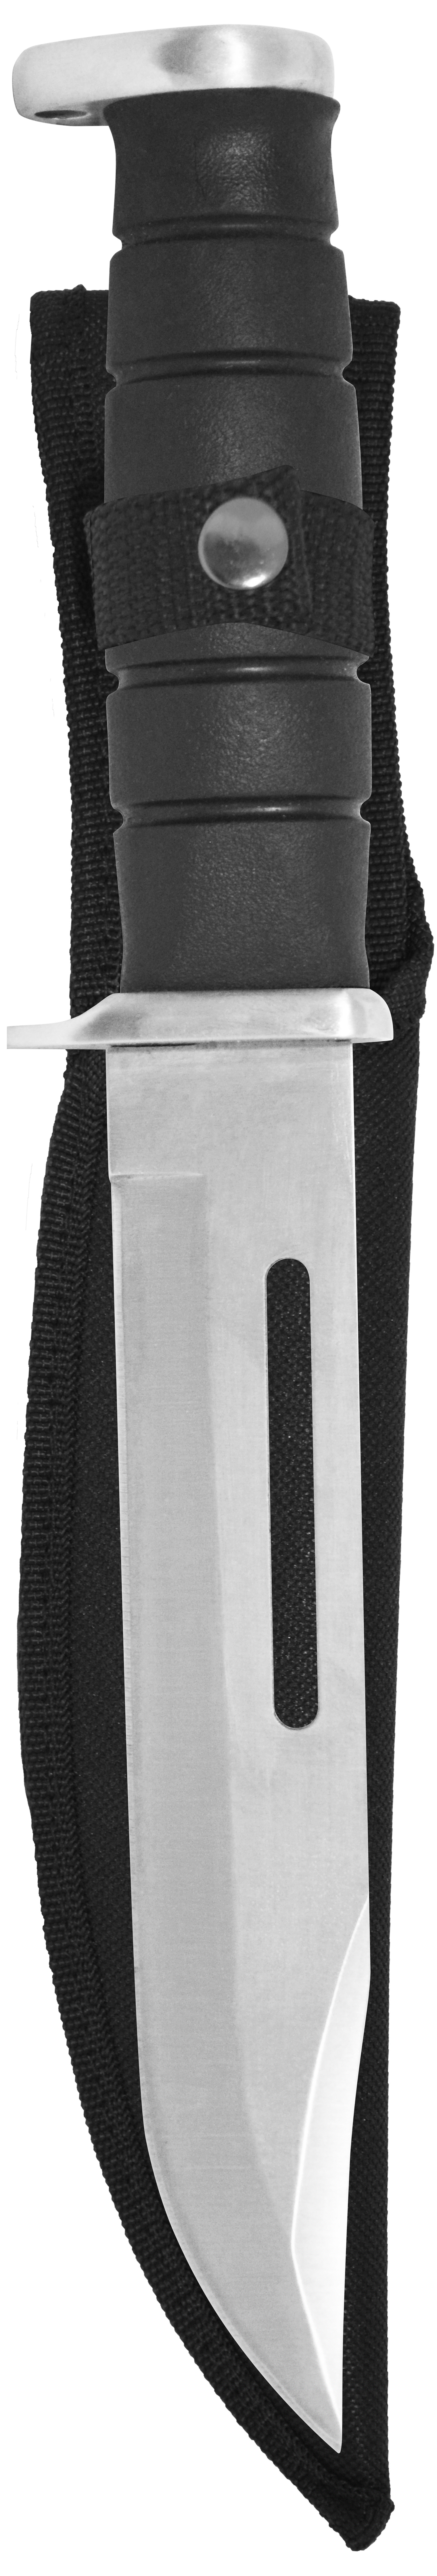 Zenport Knife 14087 Bowie Knife, 7-Inch Stainless Steel Blade, Rubber Grip, Nylon Sheath